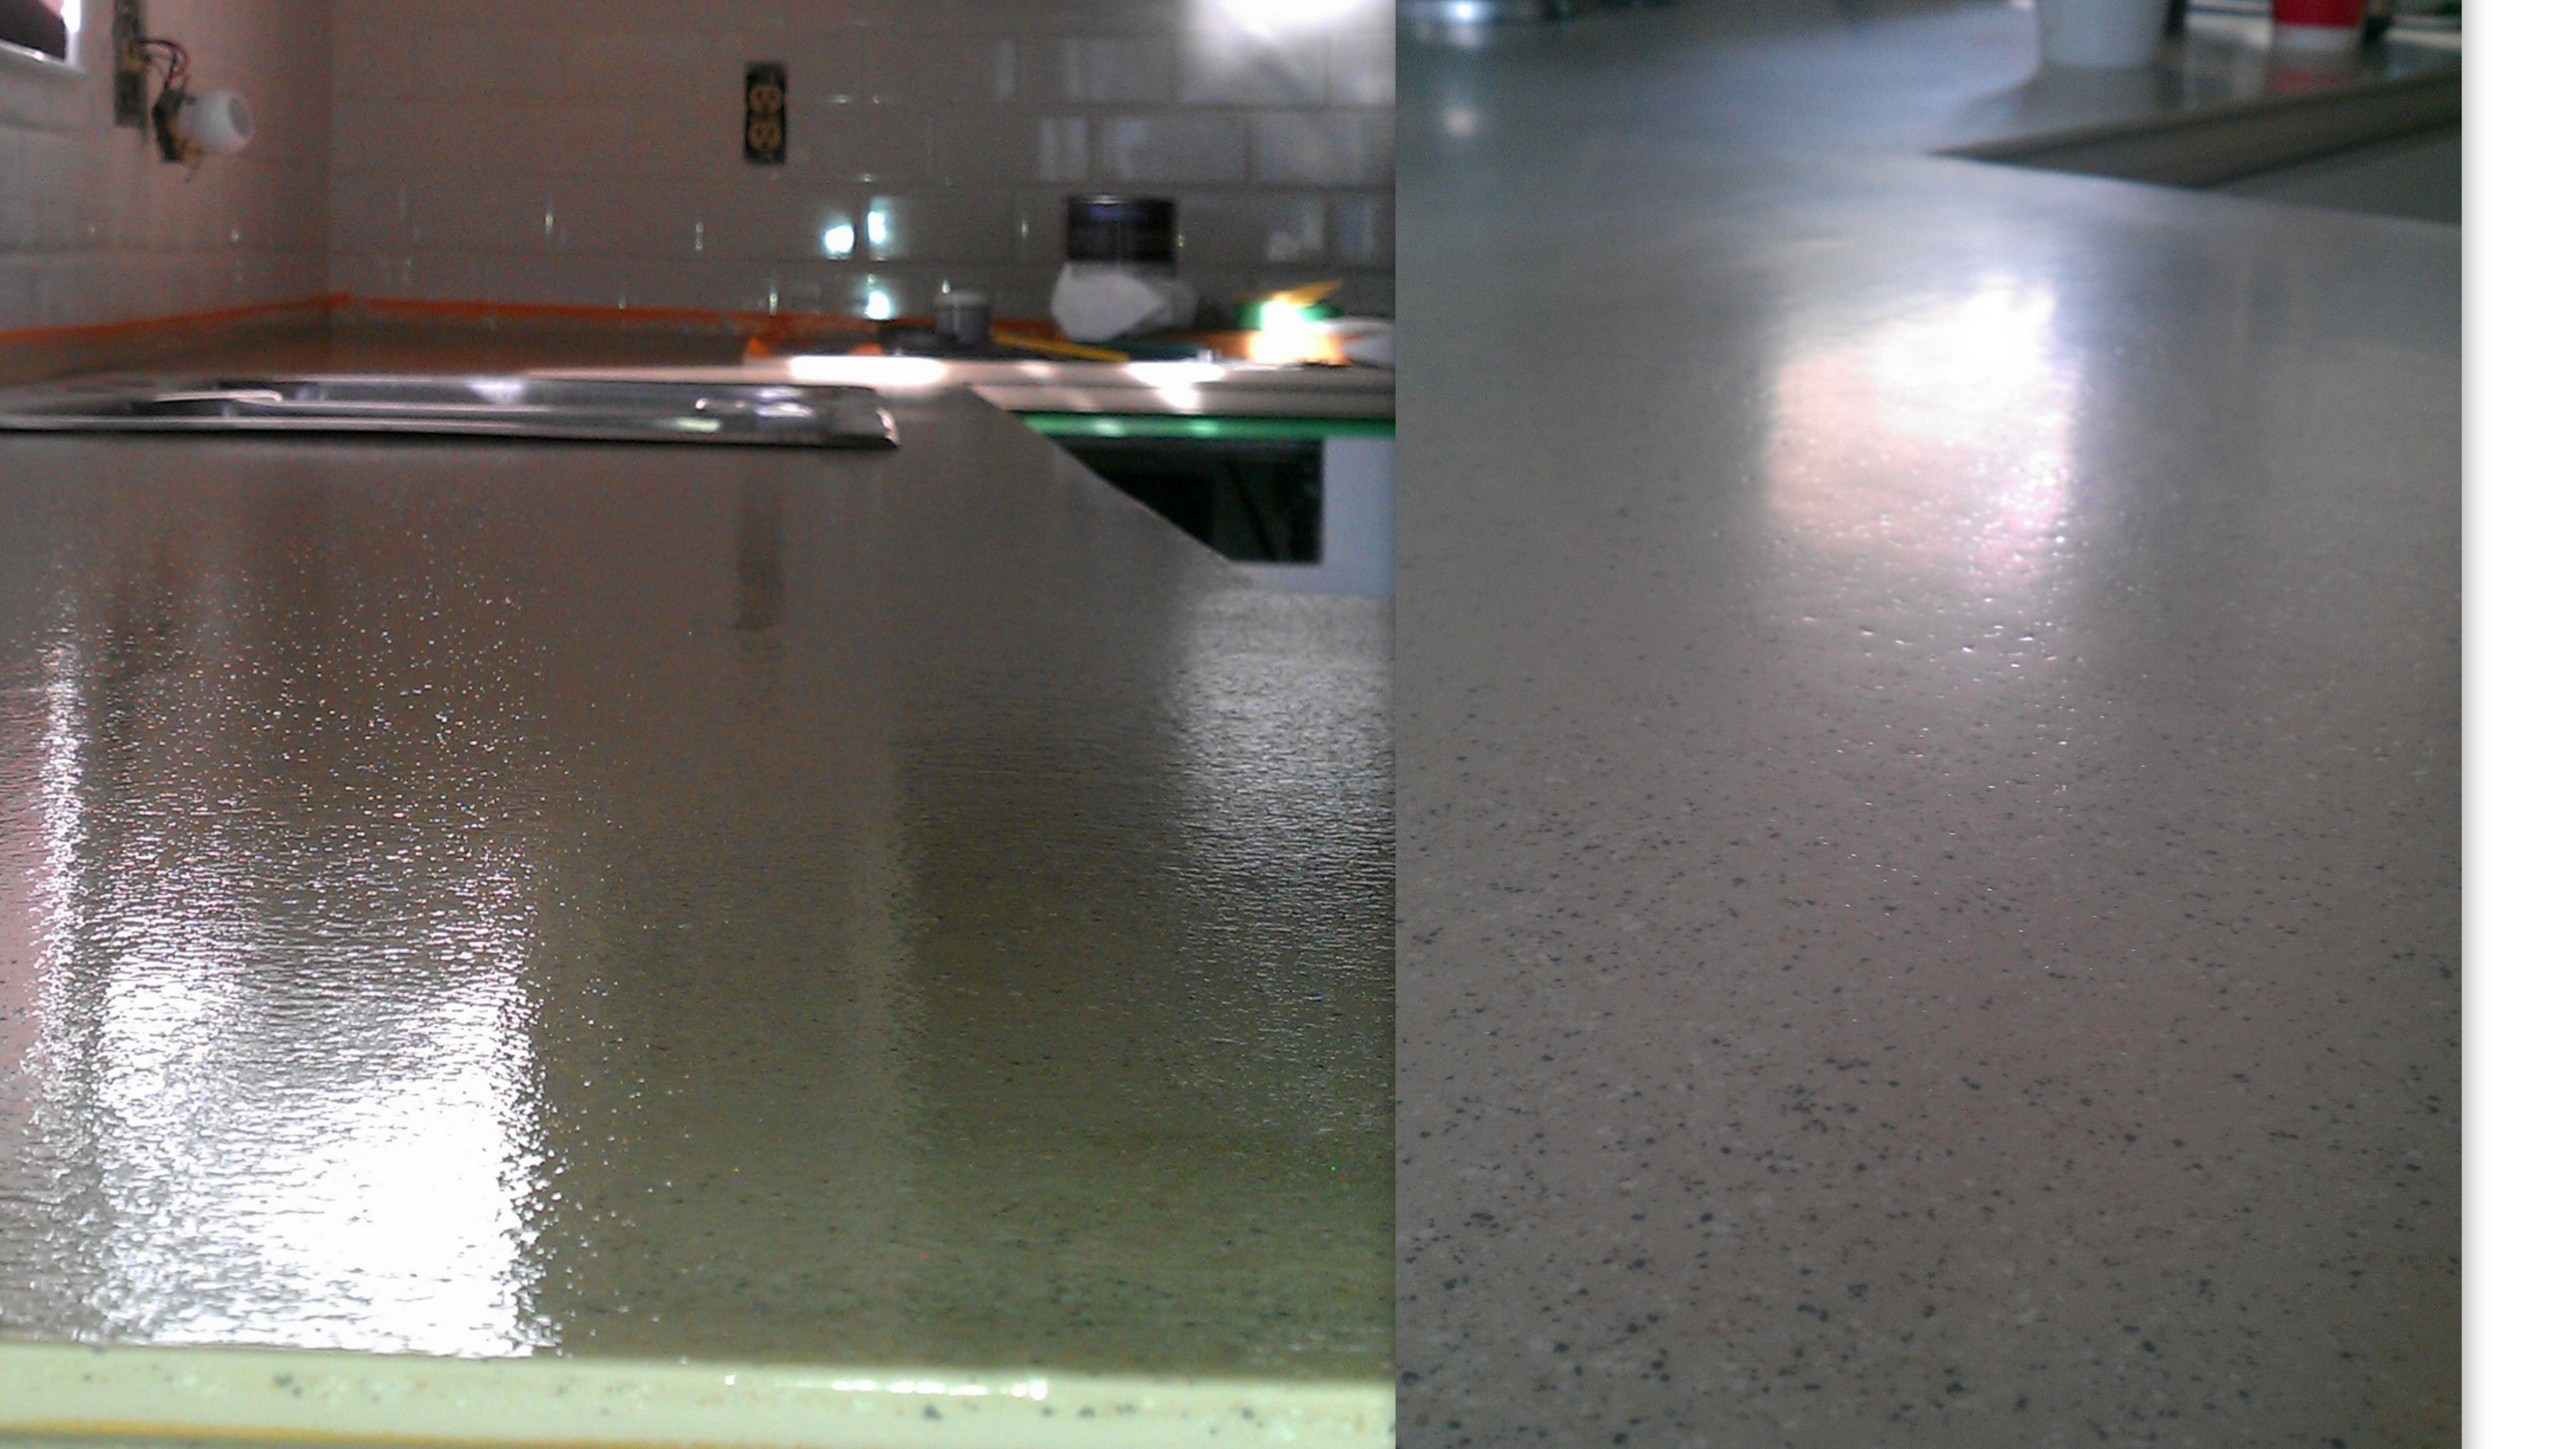 19 Comparison Of Daich Coatings Beauti Tone By Techstone